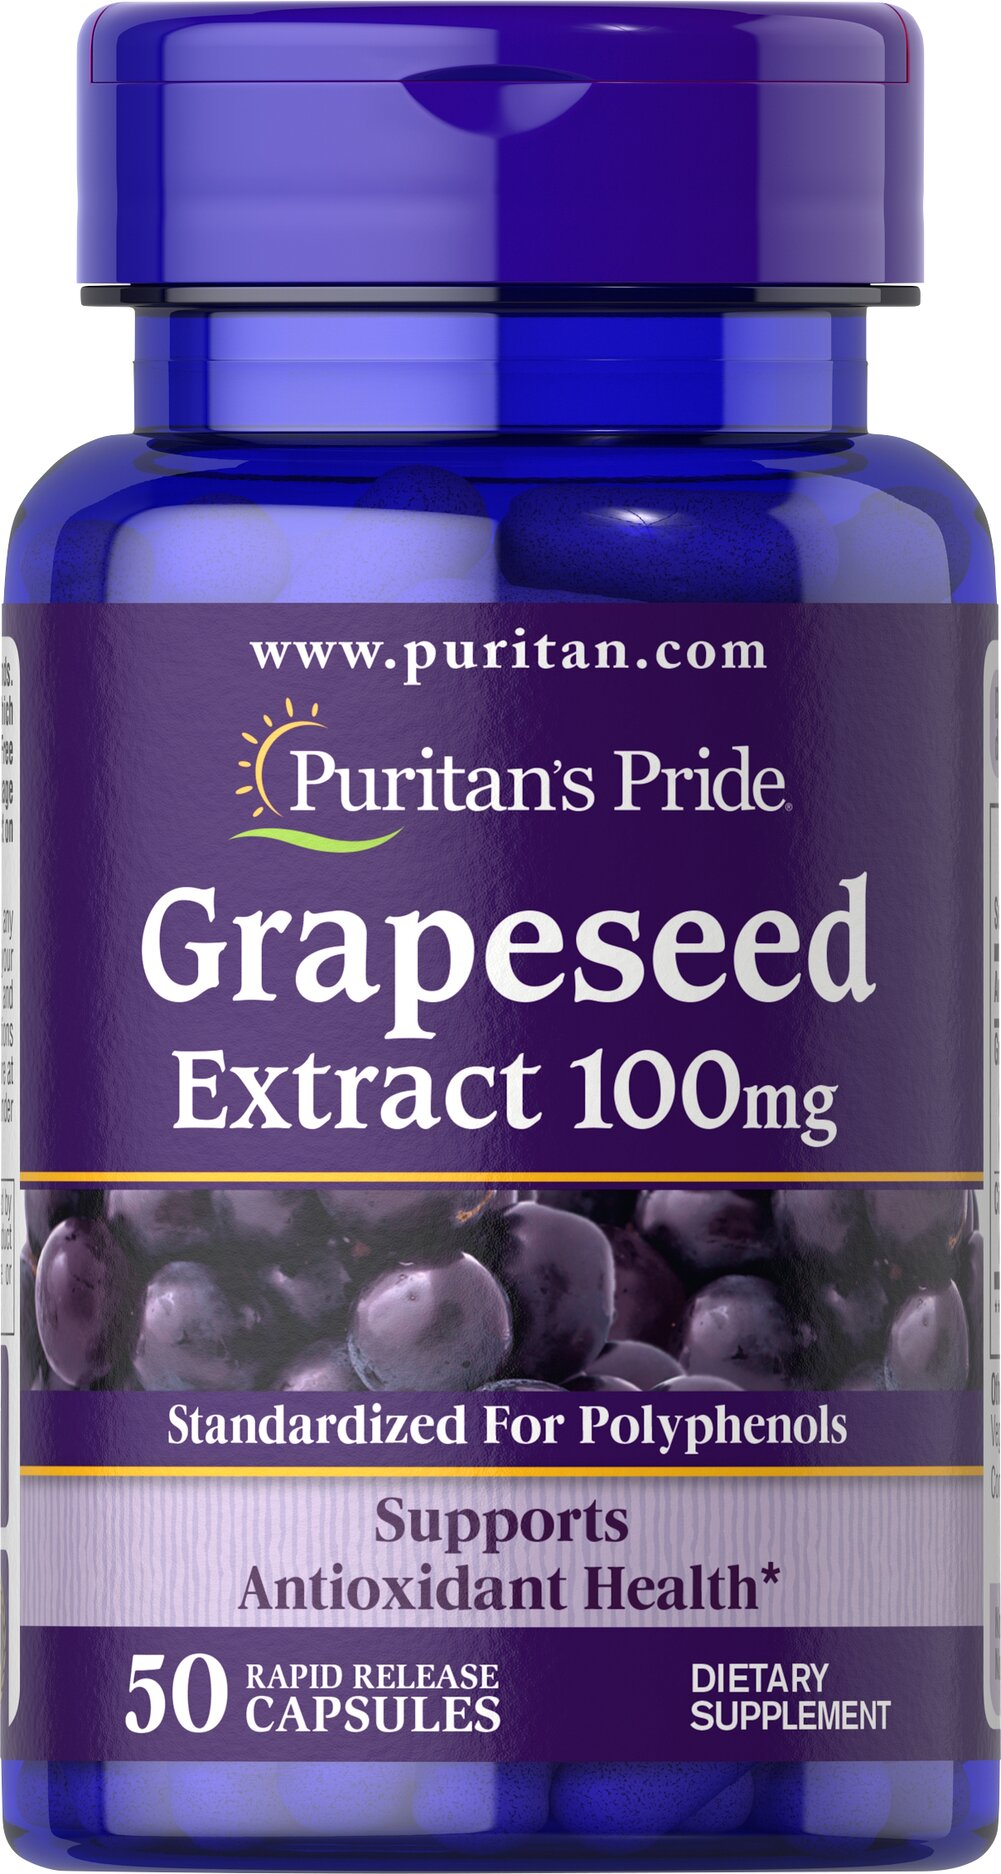 Grapeseed Extract 100 mg <p><strong></strong>Grapeseed Extract helps support antioxidant health.** Antioxidants are nutrients that help to counter the destructive nature of free radicals and assist in maintaining good health.** Grapeseed extract contains oligomeric proanthocyanidins (OPCs), which are naturally occurring bioflavonoids. Standardized to contain 50% Polyphenols. Adults can take one capsule three times daily.<br /></p> 50 Capsules 100 mg $10.99